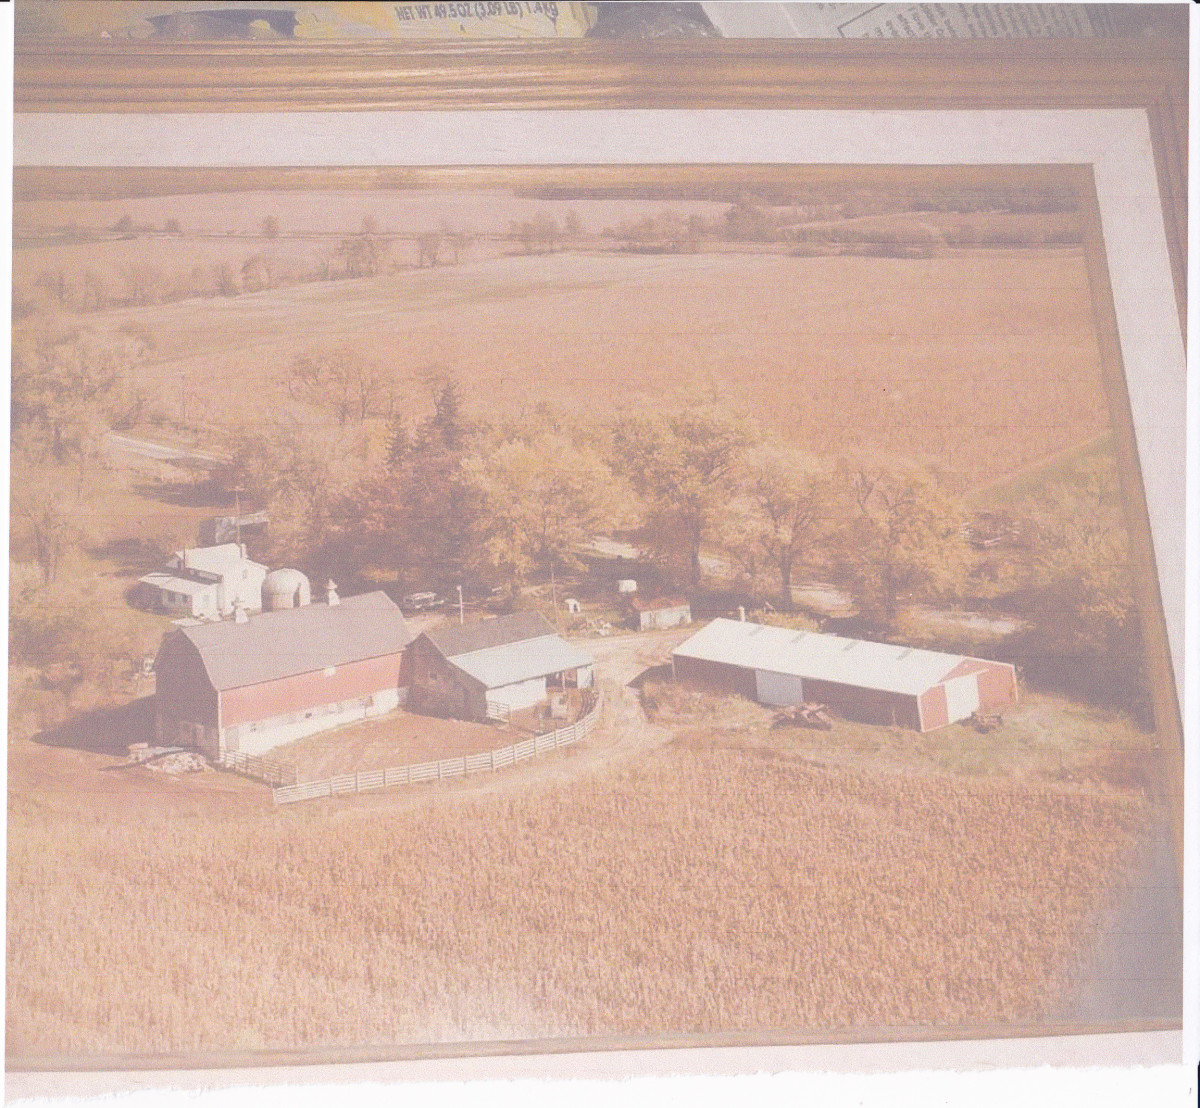 Picture taken around 1975.  The long red machine shed on the right was built in 1971.  Half of the farm land is shown.  The creek, woods, and land in back of the woods is not shown.